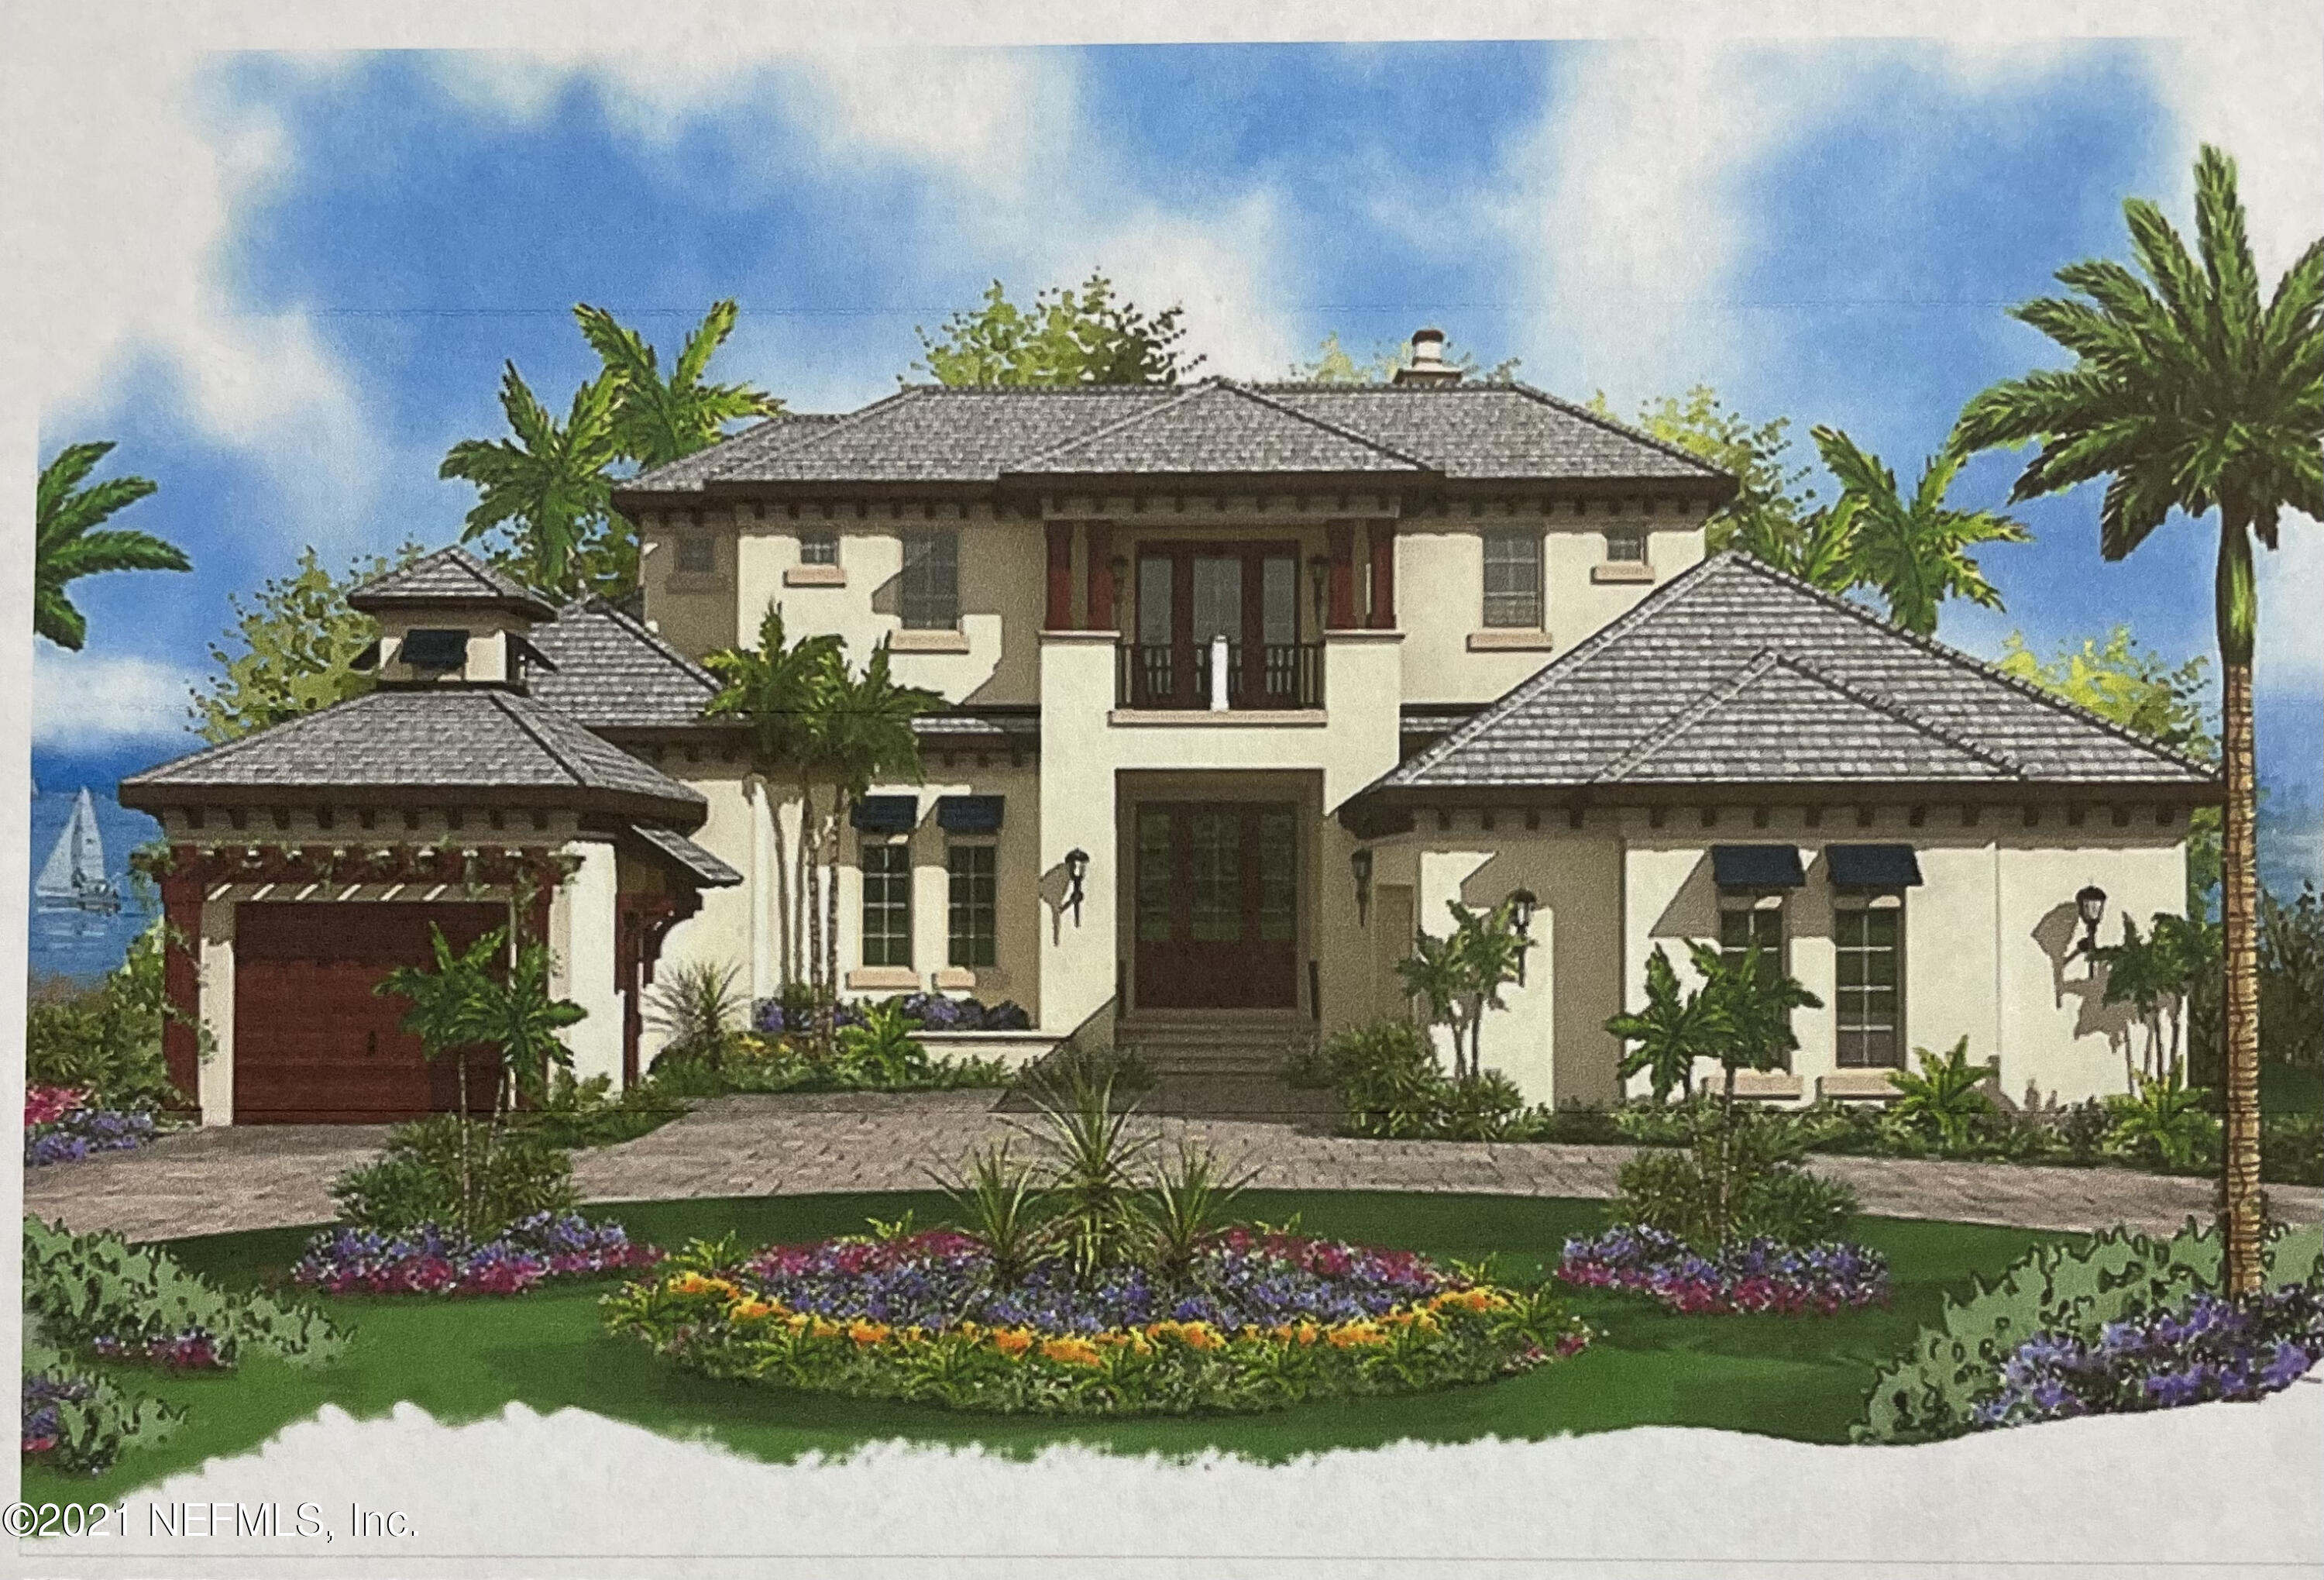 """Proposed luxury custom home to be built in the exclusive Found Forest estate section located inside of highly sought after Marsh Landing Country Club in Ponte Vedra Beach, Florida.  Use this proposed plan by Aurora Builders or build your own custom dream home on this 3.42 acre lot w/ 2.66 acres of uplands.  You can even build a separate home for in-laws or guests, as 2 separate homes are allowed on this lot, but cannot be subdivided.   FULL GOLF INITIATION INCLUDED TO MARSH LANDING COUNTRY CLUB; applicable dues & fees apply. """"Luxury custom home at 5,973 sq. ft. with 4 bedrooms and 4 full Baths and 1 half Baths """"Wood-framed construction with stucco veneer """"Concrete roof tiles, with ornamental brackets at roof overhangs """"Clad wood or fiberglass-framed windows and exterior doors """"3-car garage with room to add additional garage bays """"Concrete paver driveway and fully landscaped yard """"Large covered rear Lanai for outdoor seating and dining with outdoor kitchen and fireplace """"10' high ceilings on the 1st floor with ornamental ceiling treatments in most rooms """"9' high ceilings on 2nd floor with volume ceiling treatments """"Open floor plan including a spacious Kitchen, Family room, and Dining area with adjacent wet bar """"Grand entry Foyer and formal Living room, with fireplace and adjacent Wine Cellar """"Very large Master suite adjacent to a ground floor Study  """"Plenty of space for entertaining on the upper floor with large second Living room and walk-out covered balcony with twin sun decks """"All upper floor bedrooms feature ensuite baths and balcony access """"Stone or hardwood floors, solid wood doors, rich molding, and custom built-ins  Suggested cost of home (without lot) ~$2,539,000"""